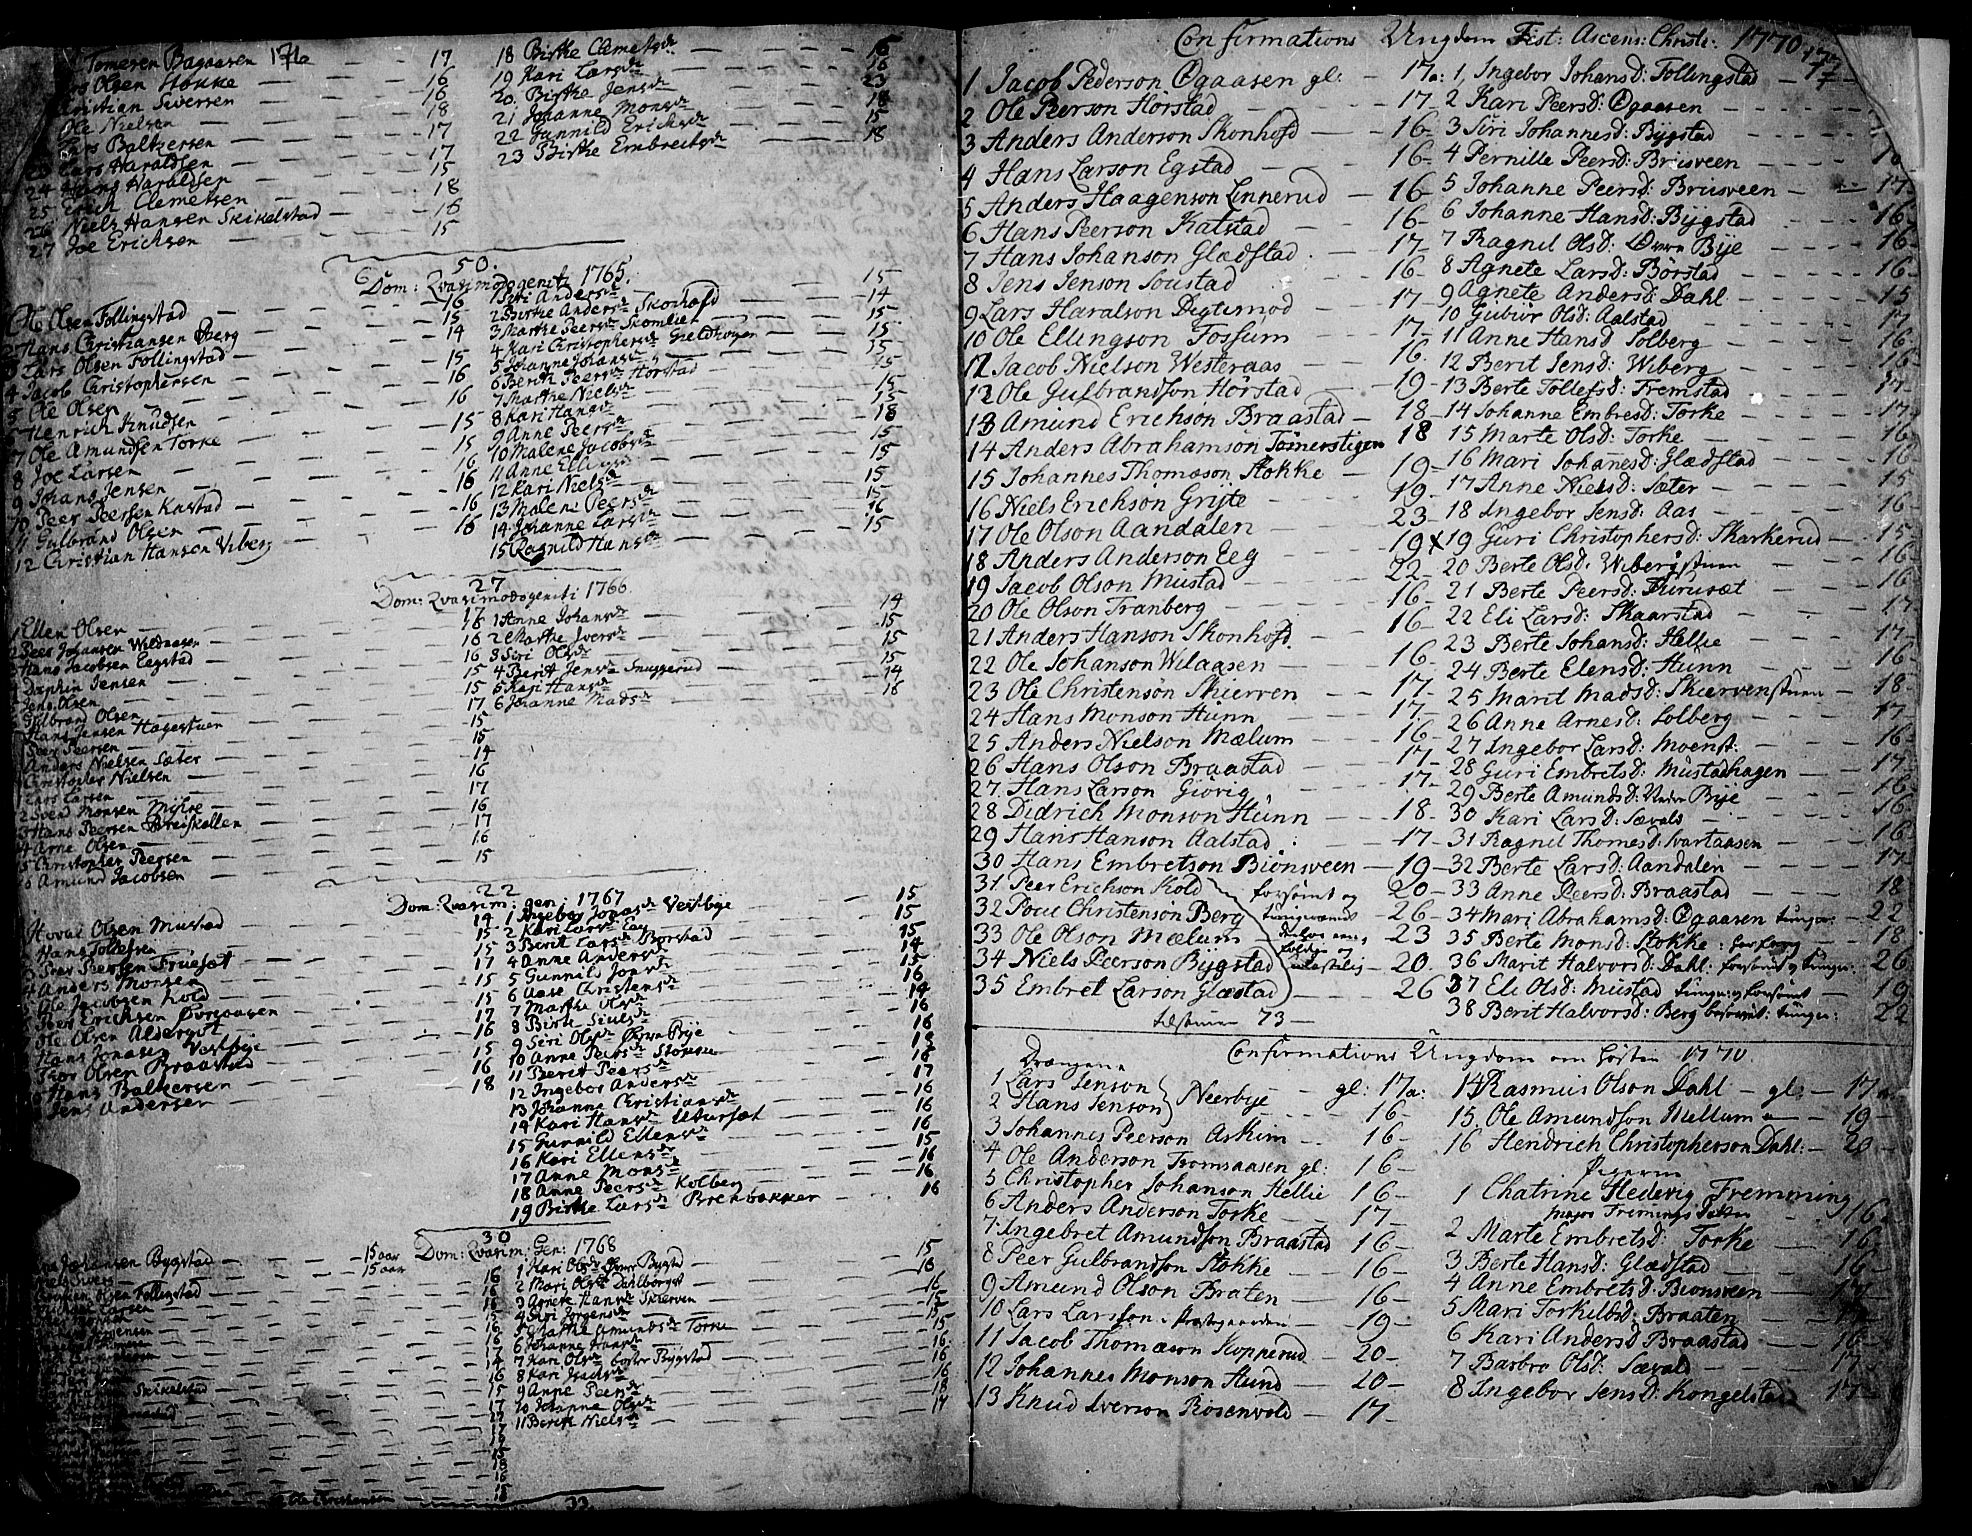 SAH, Vardal prestekontor, H/Ha/Haa/L0002: Parish register (official) no. 2, 1748-1776, p. 176-177